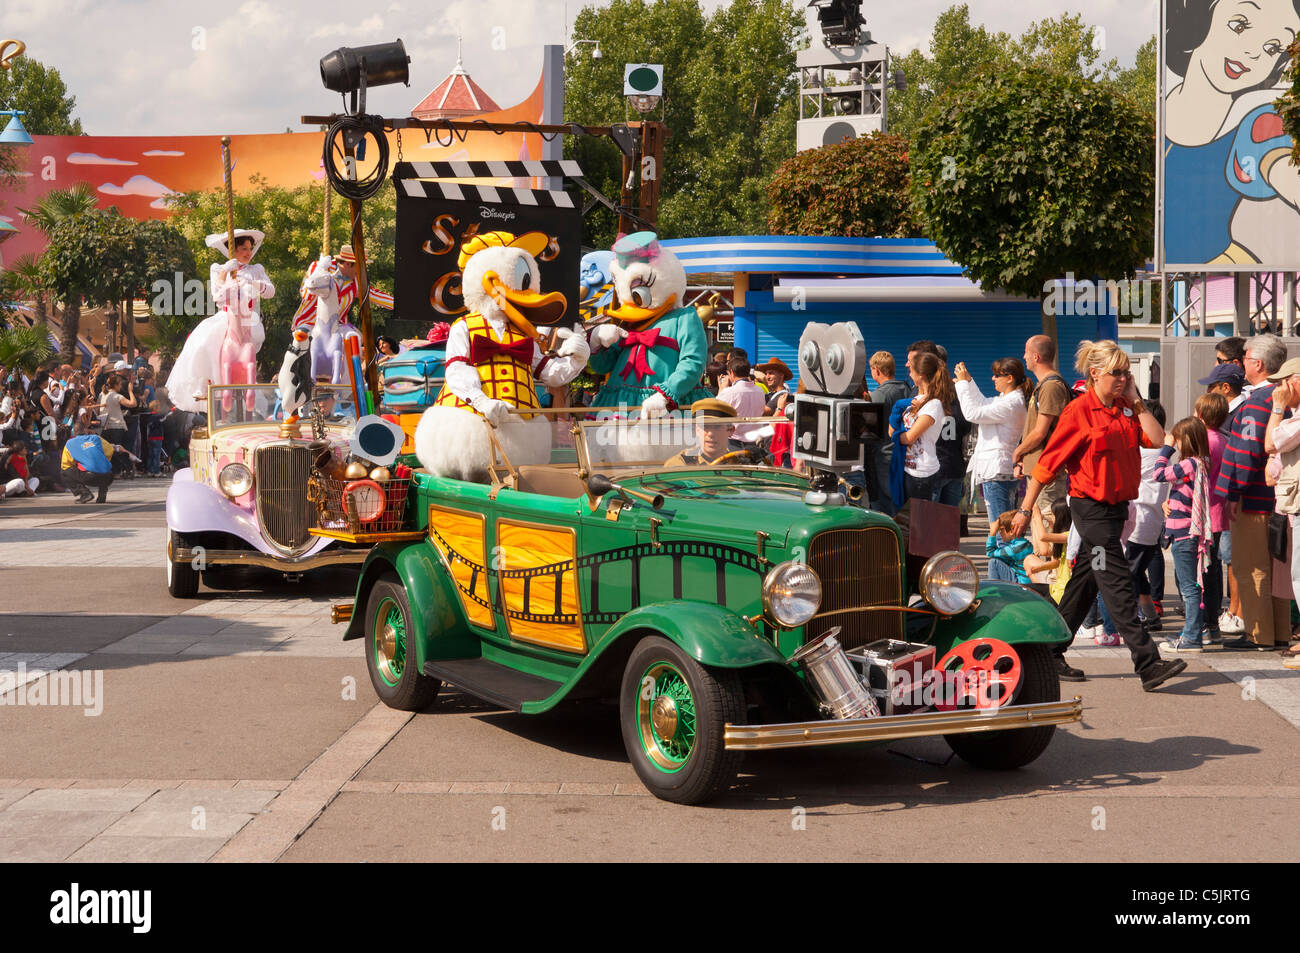 The Stars 'n' Cars parade at Disneyland Paris in France - Stock Image